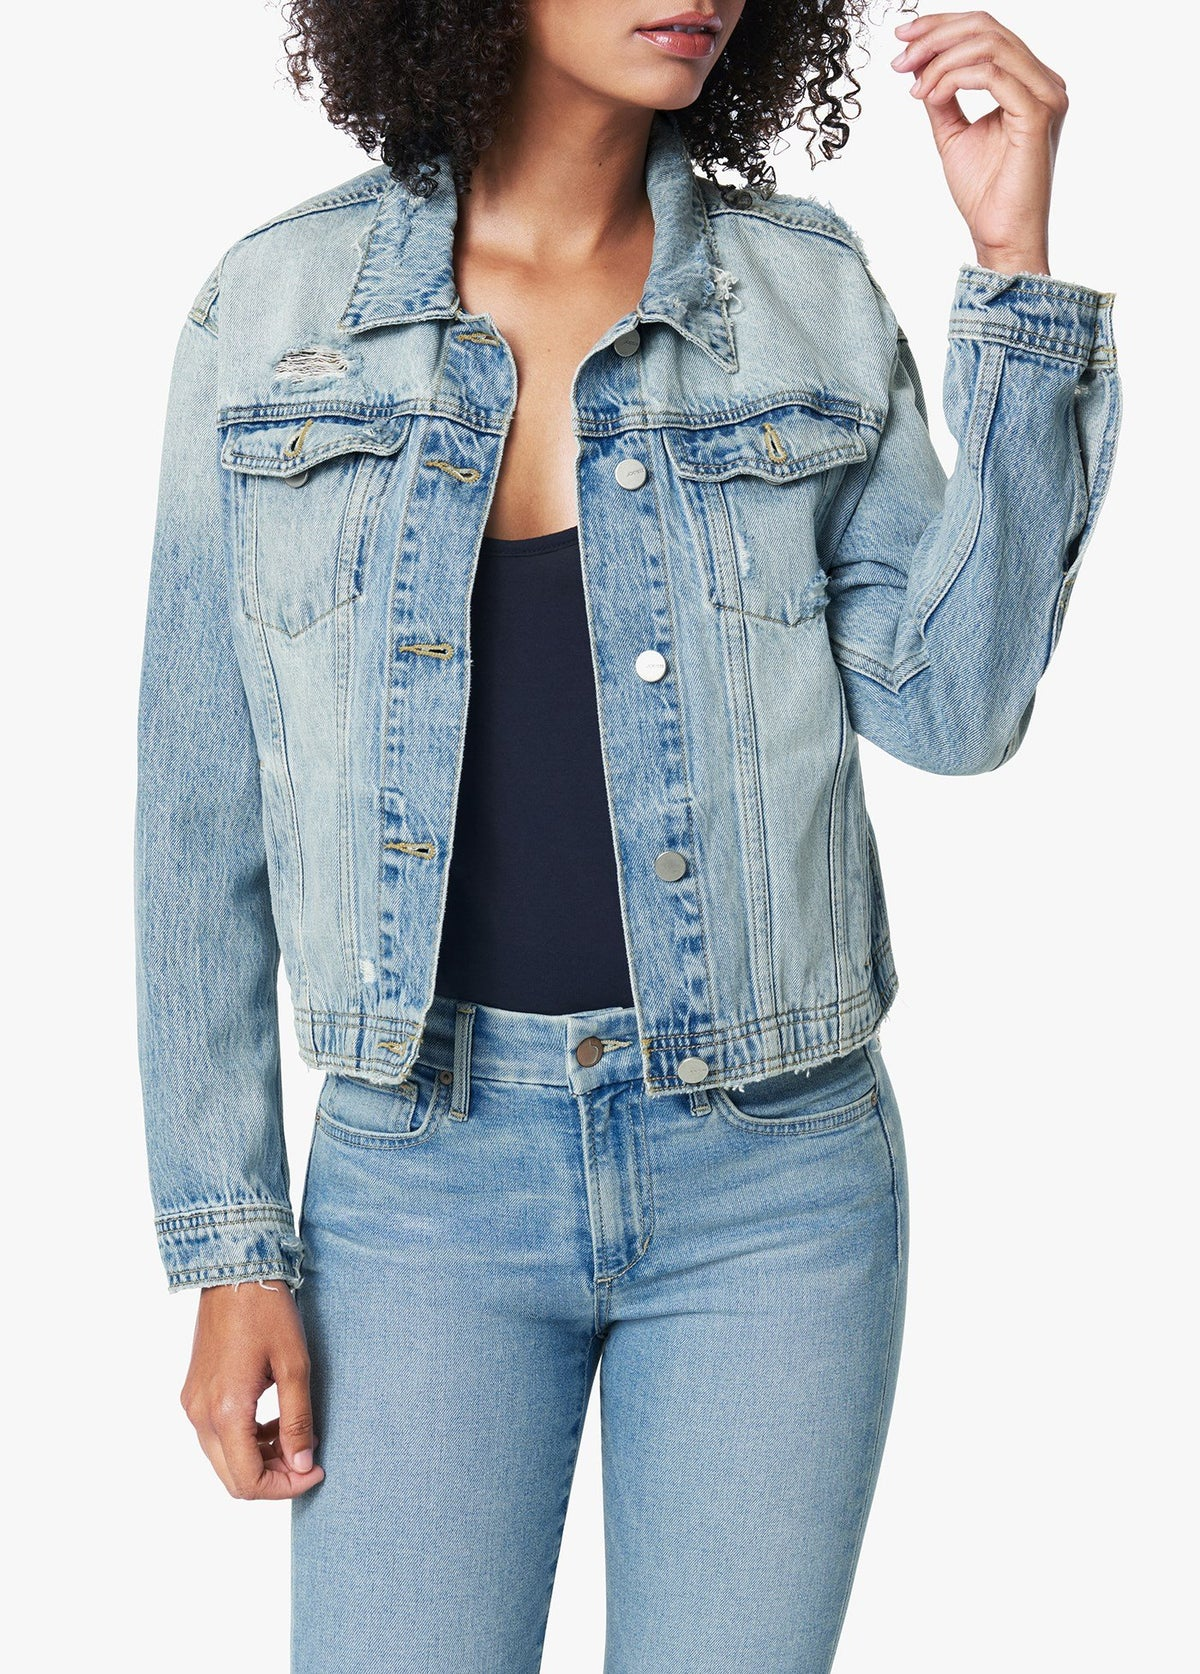 Joes Jeans Denim Jacket